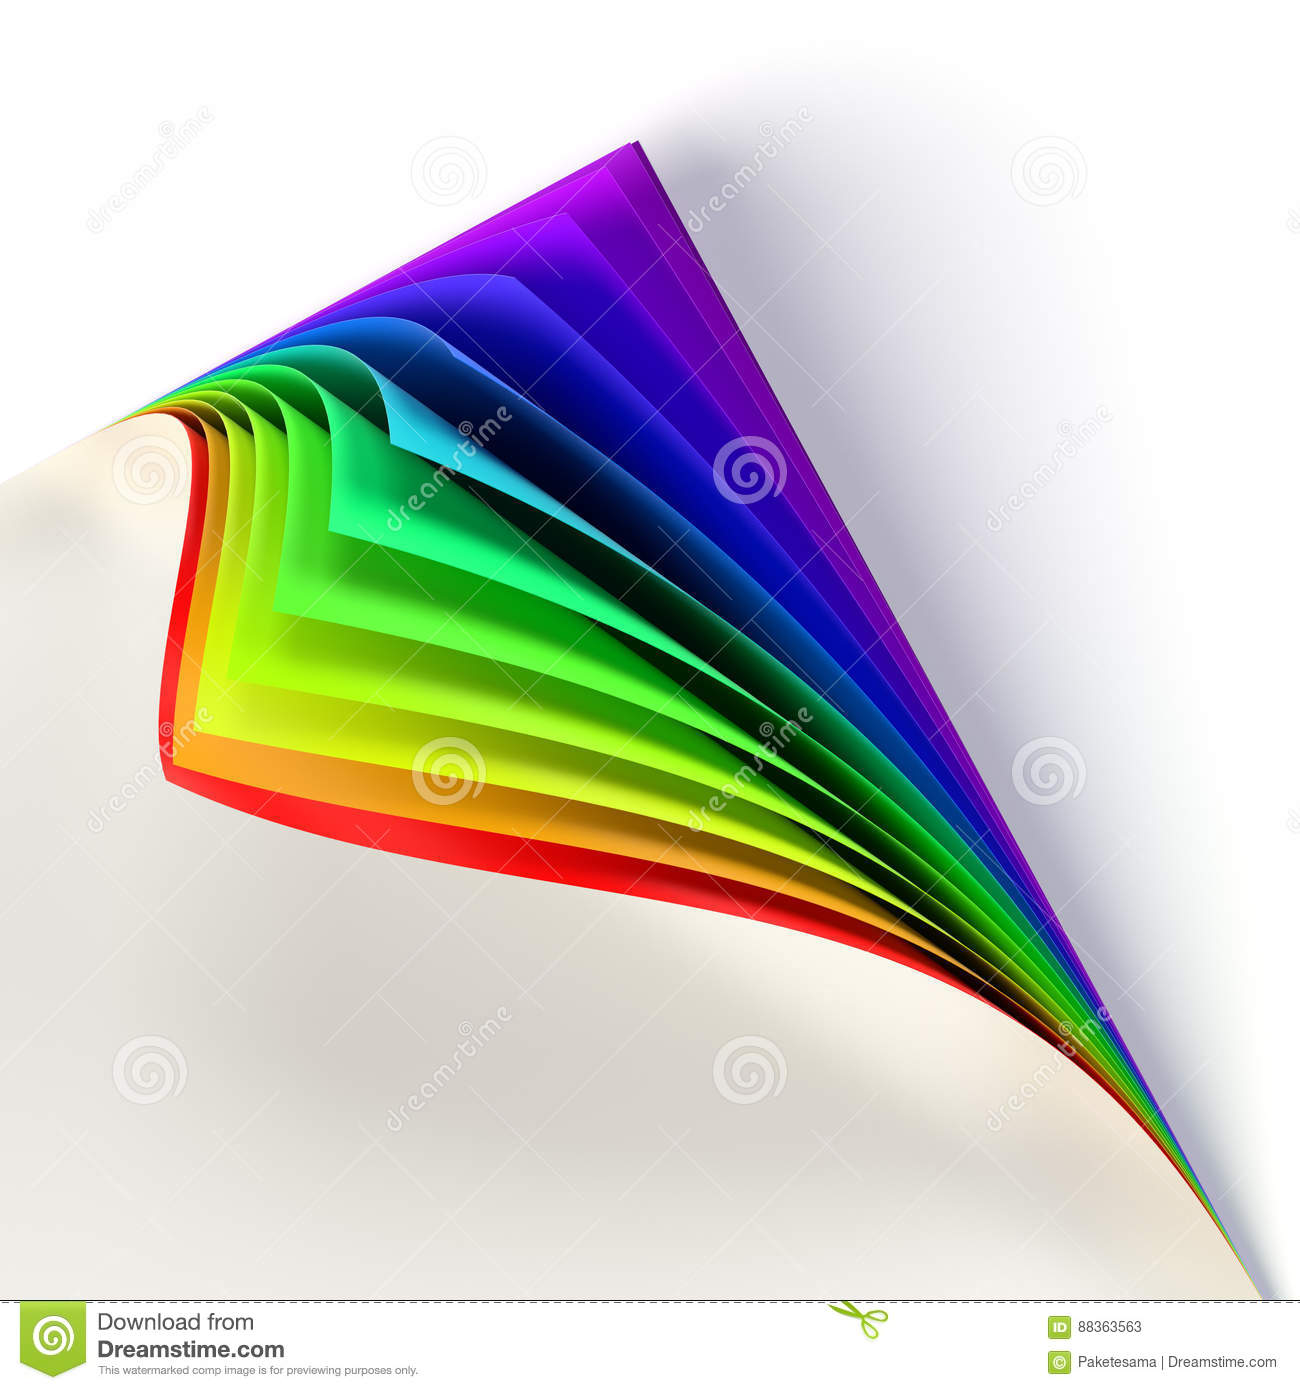 Blank Document Rainbow Colored Curled Corner Graphic Design Element Empty Template Mock Up Business Corporate Identity Advertisement